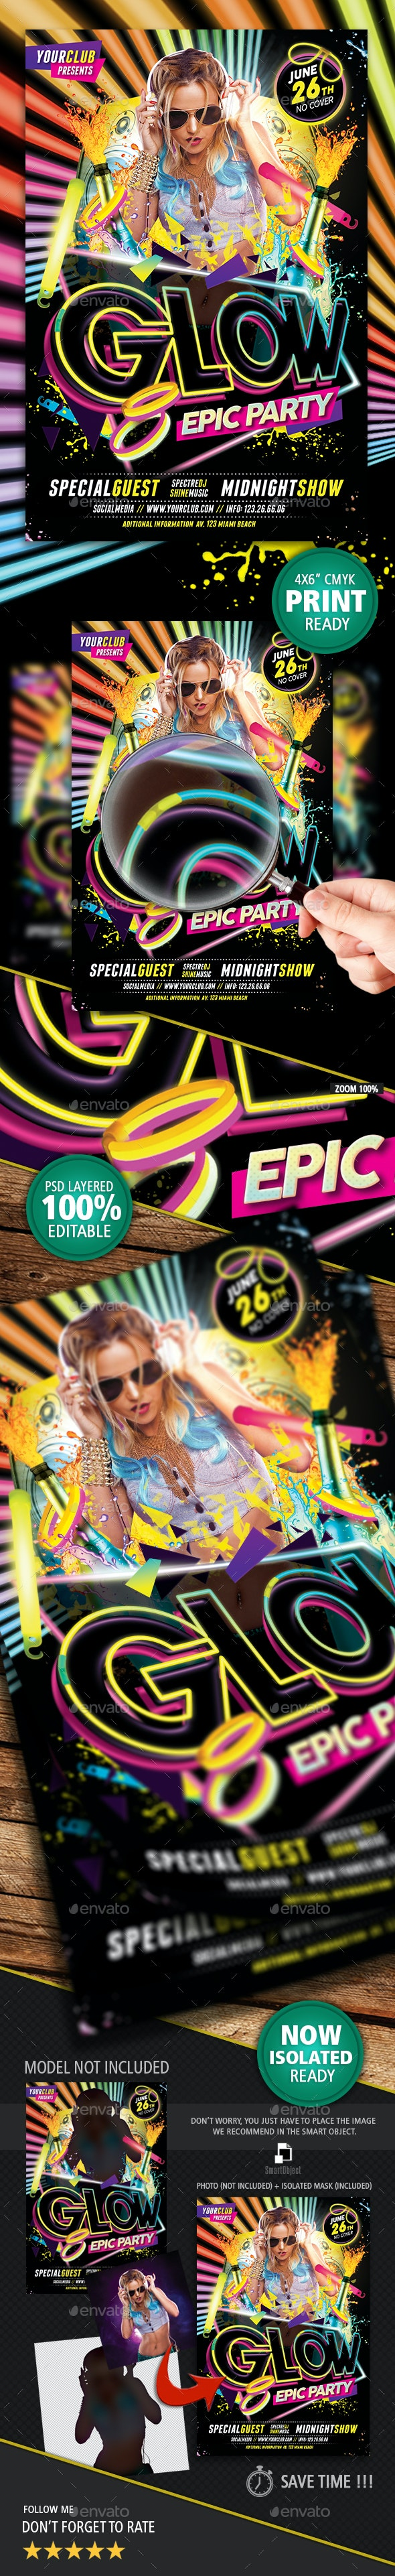 Glow Epic Party Flyer - Clubs & Parties Events